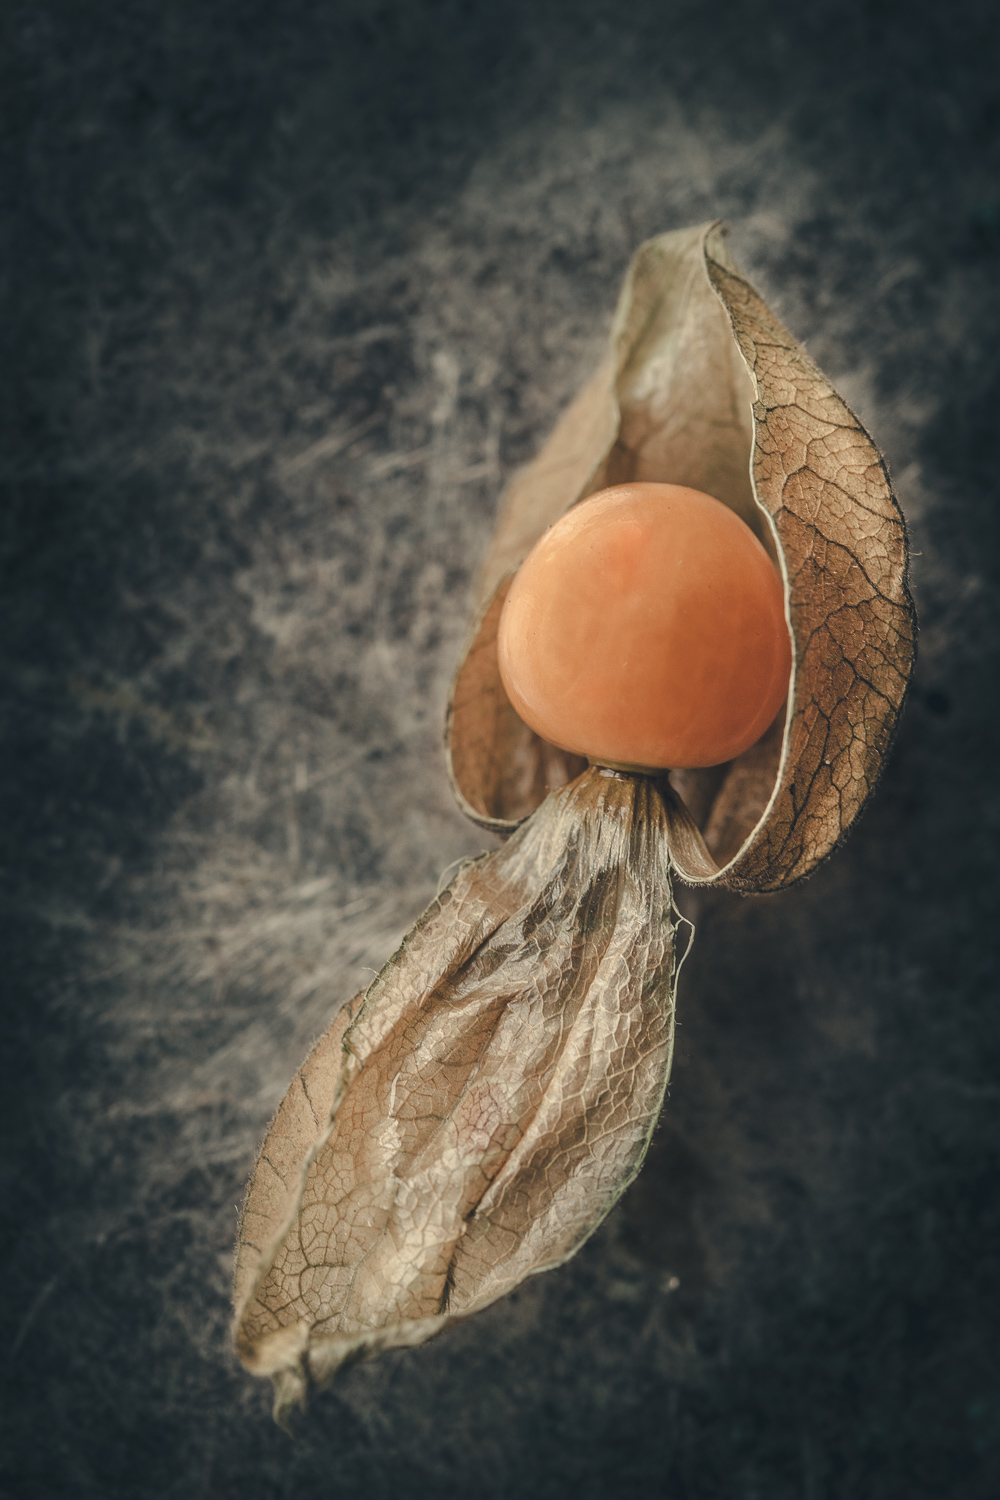 Physalis - How to Create Fine Art Images from the Mundane